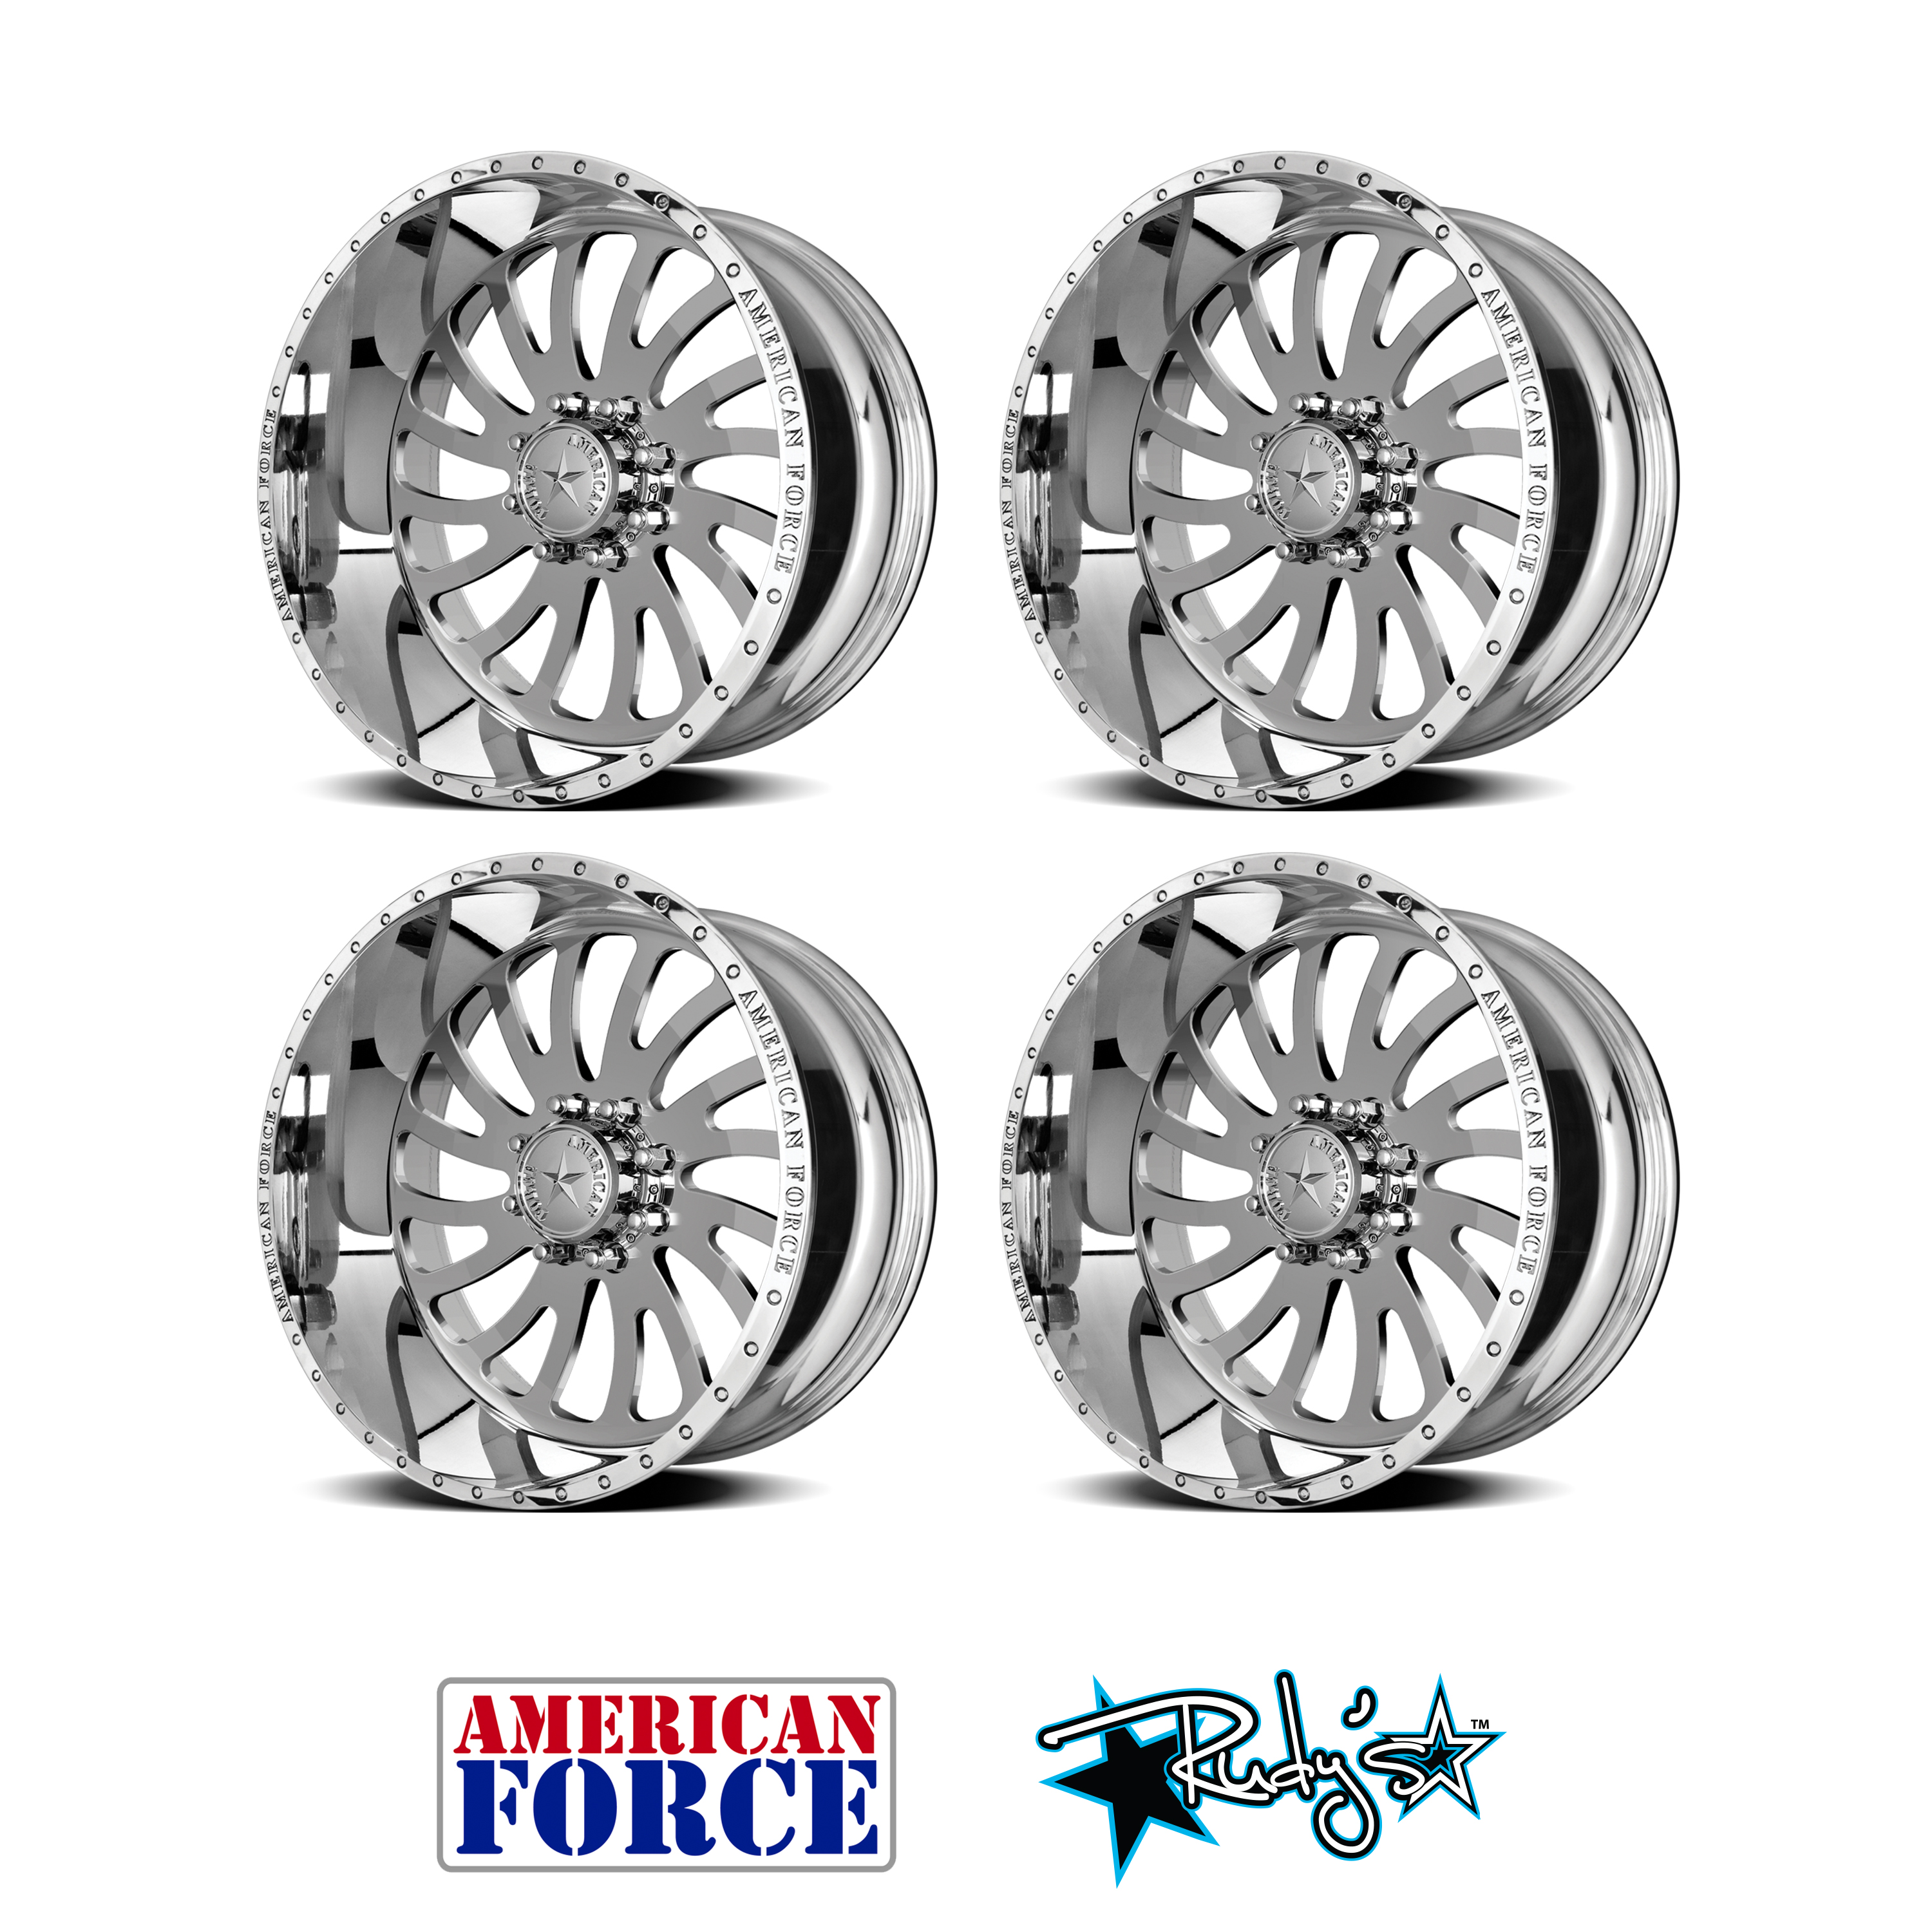 4 24x12 American Force Polished Ss8 Octane Wheels For Chevy Gmc Ford Dodge Ebay